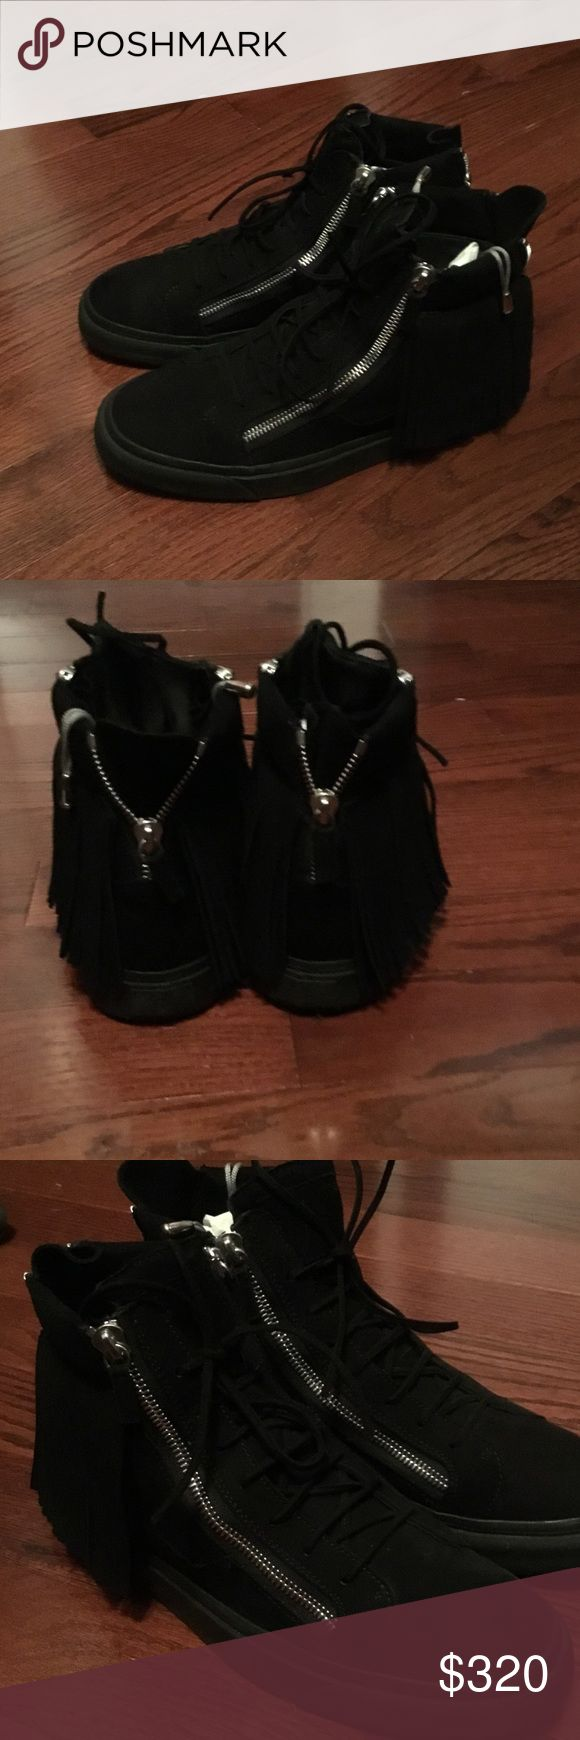 Giuseppe Men's Sneakers Selling Black Suede Giuseppe Fringe Sneakers size 46 (13). Worn 3x. Comes with dust bag. 100% Authentic. No bs offers Giuseppe Zanotti Shoes Sneakers